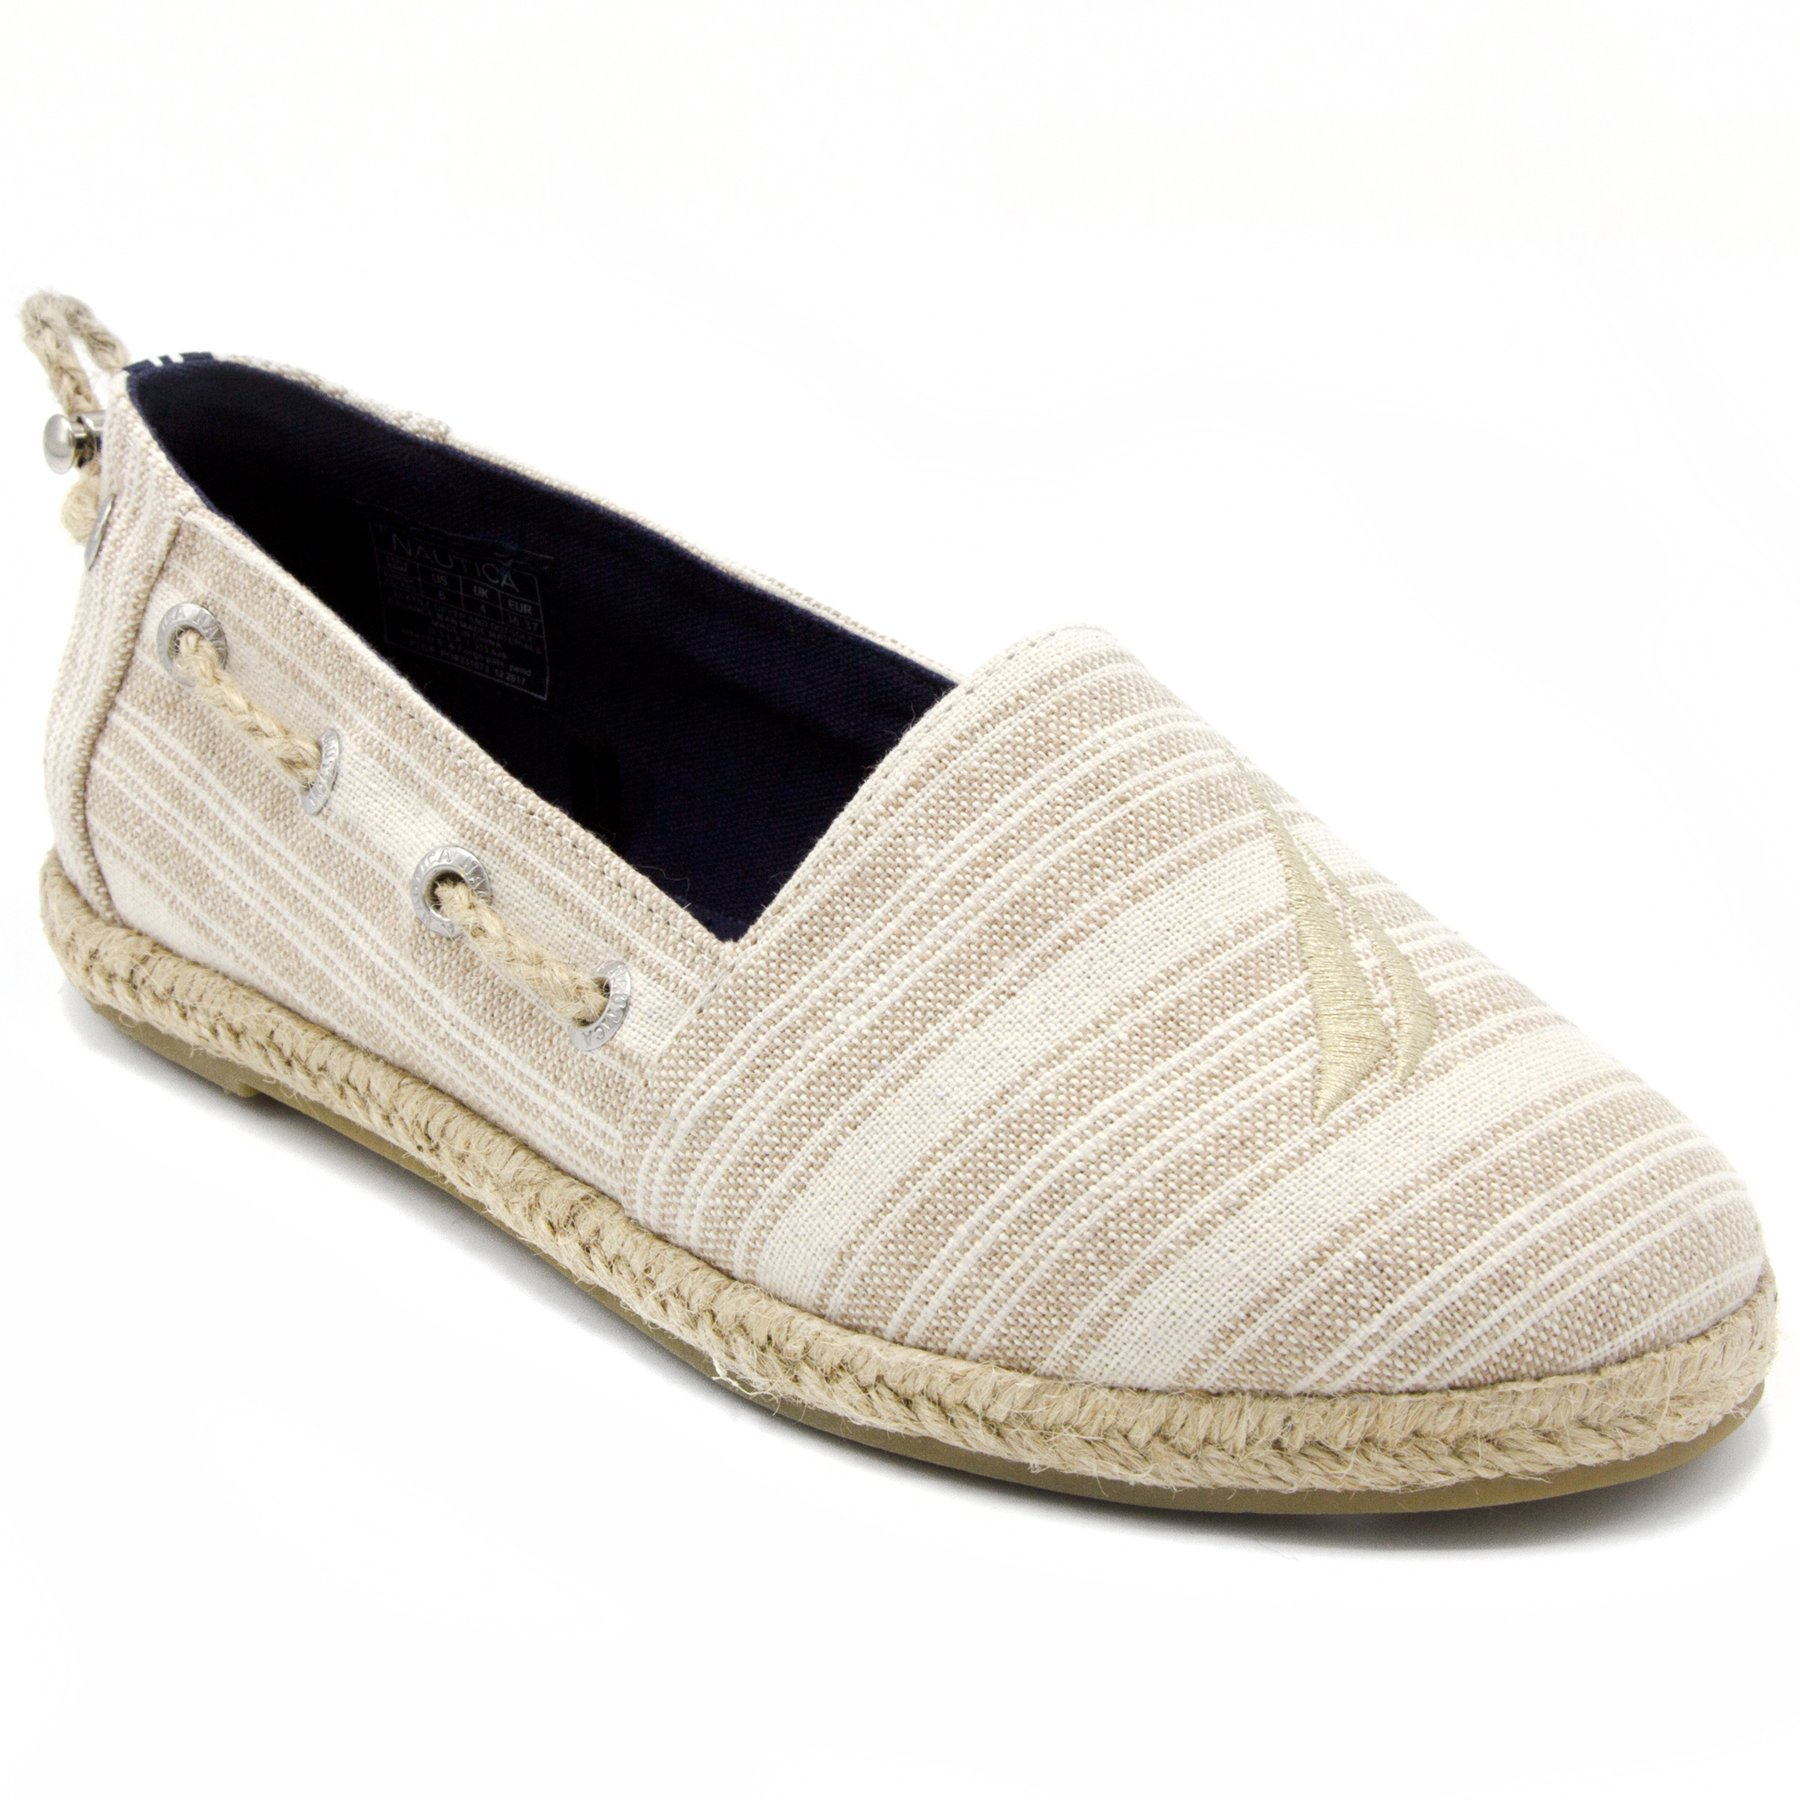 Nautica Women's Rudder J Class Espadrille Flat, Canvas Casual Slip-On Shoe with Rope Stitching Oyster Stripe-6